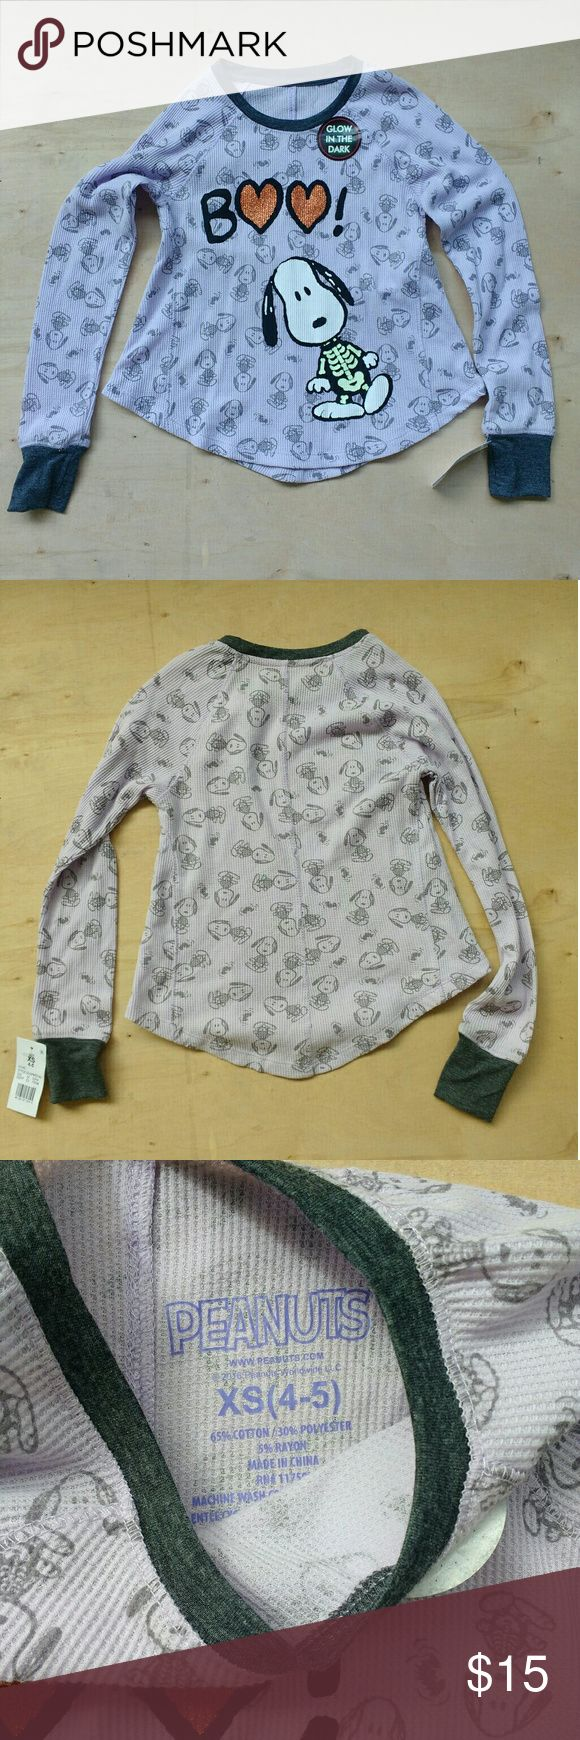 Snoopy Halloween Glow in the Dark Shirt, NWT Peanuts brand Snoopy long sleeve shirt, glows in the dark, new with tags, size XS 4-5 Peanuts Shirts & Tops Tees - Long Sleeve